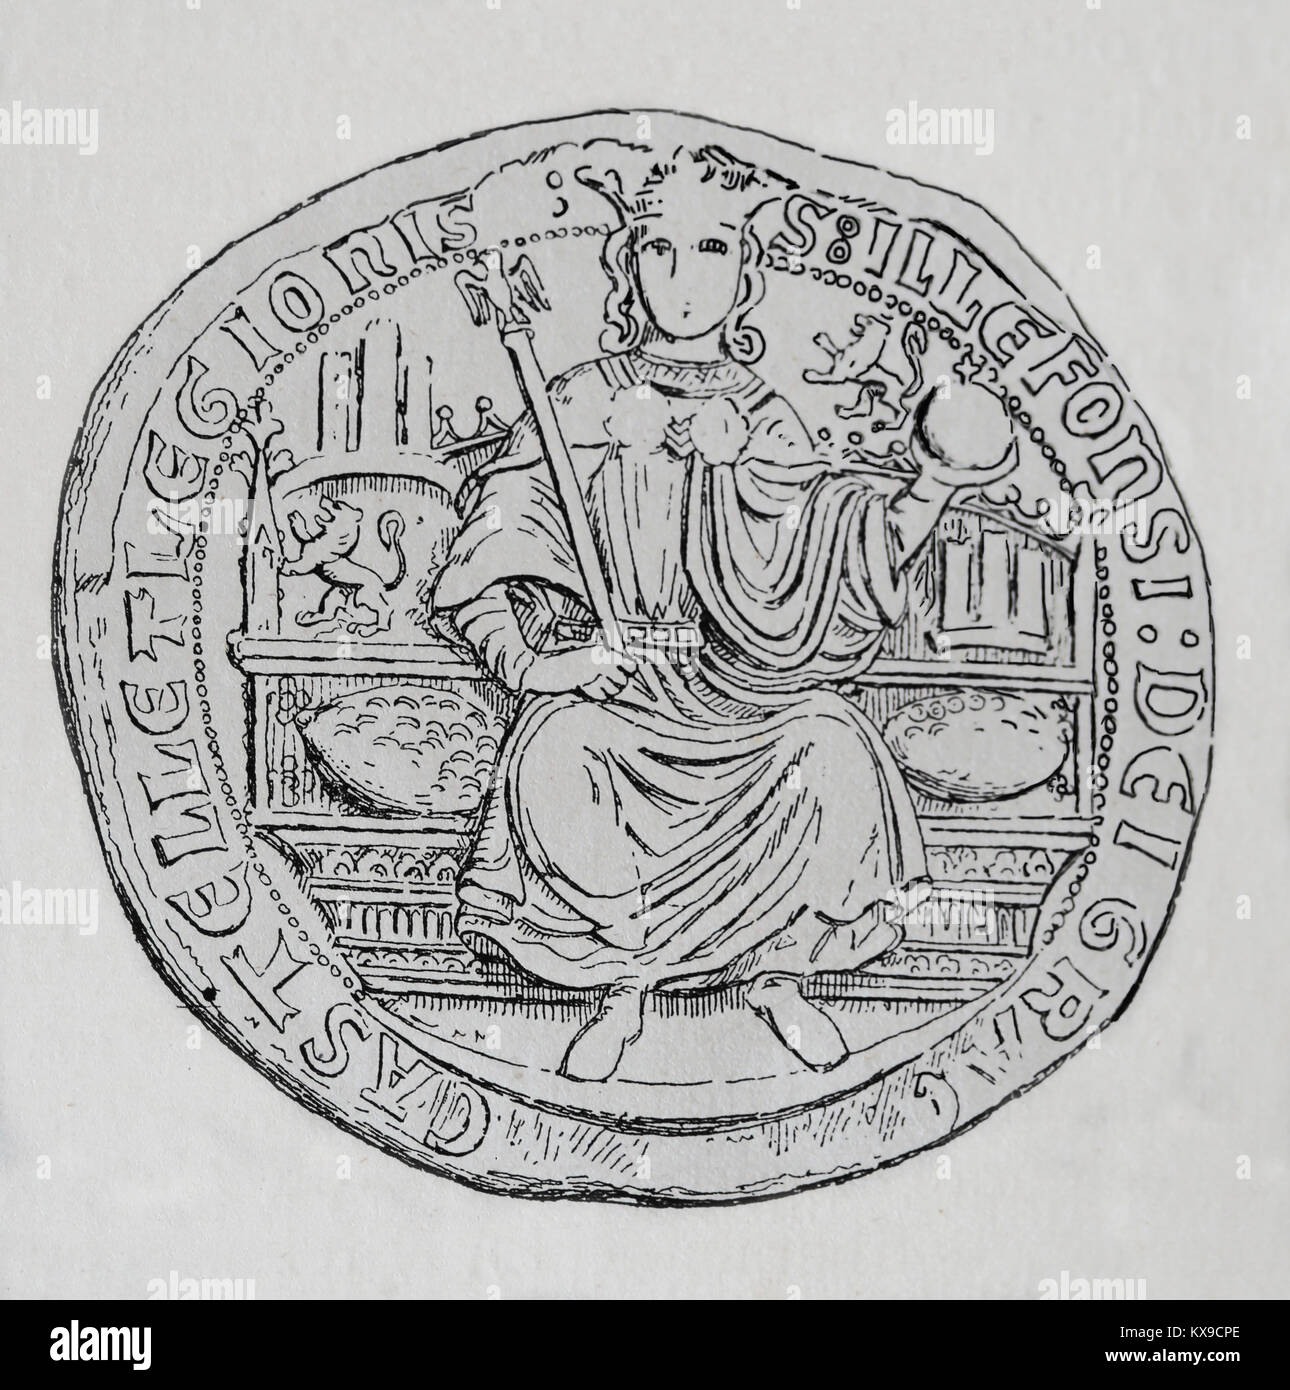 Alfonso XI of Castile (1311-1350) 'The Avenger'. King of Castile, Leon and Galicia. Stamp. Engraving, 1879 - Stock Image